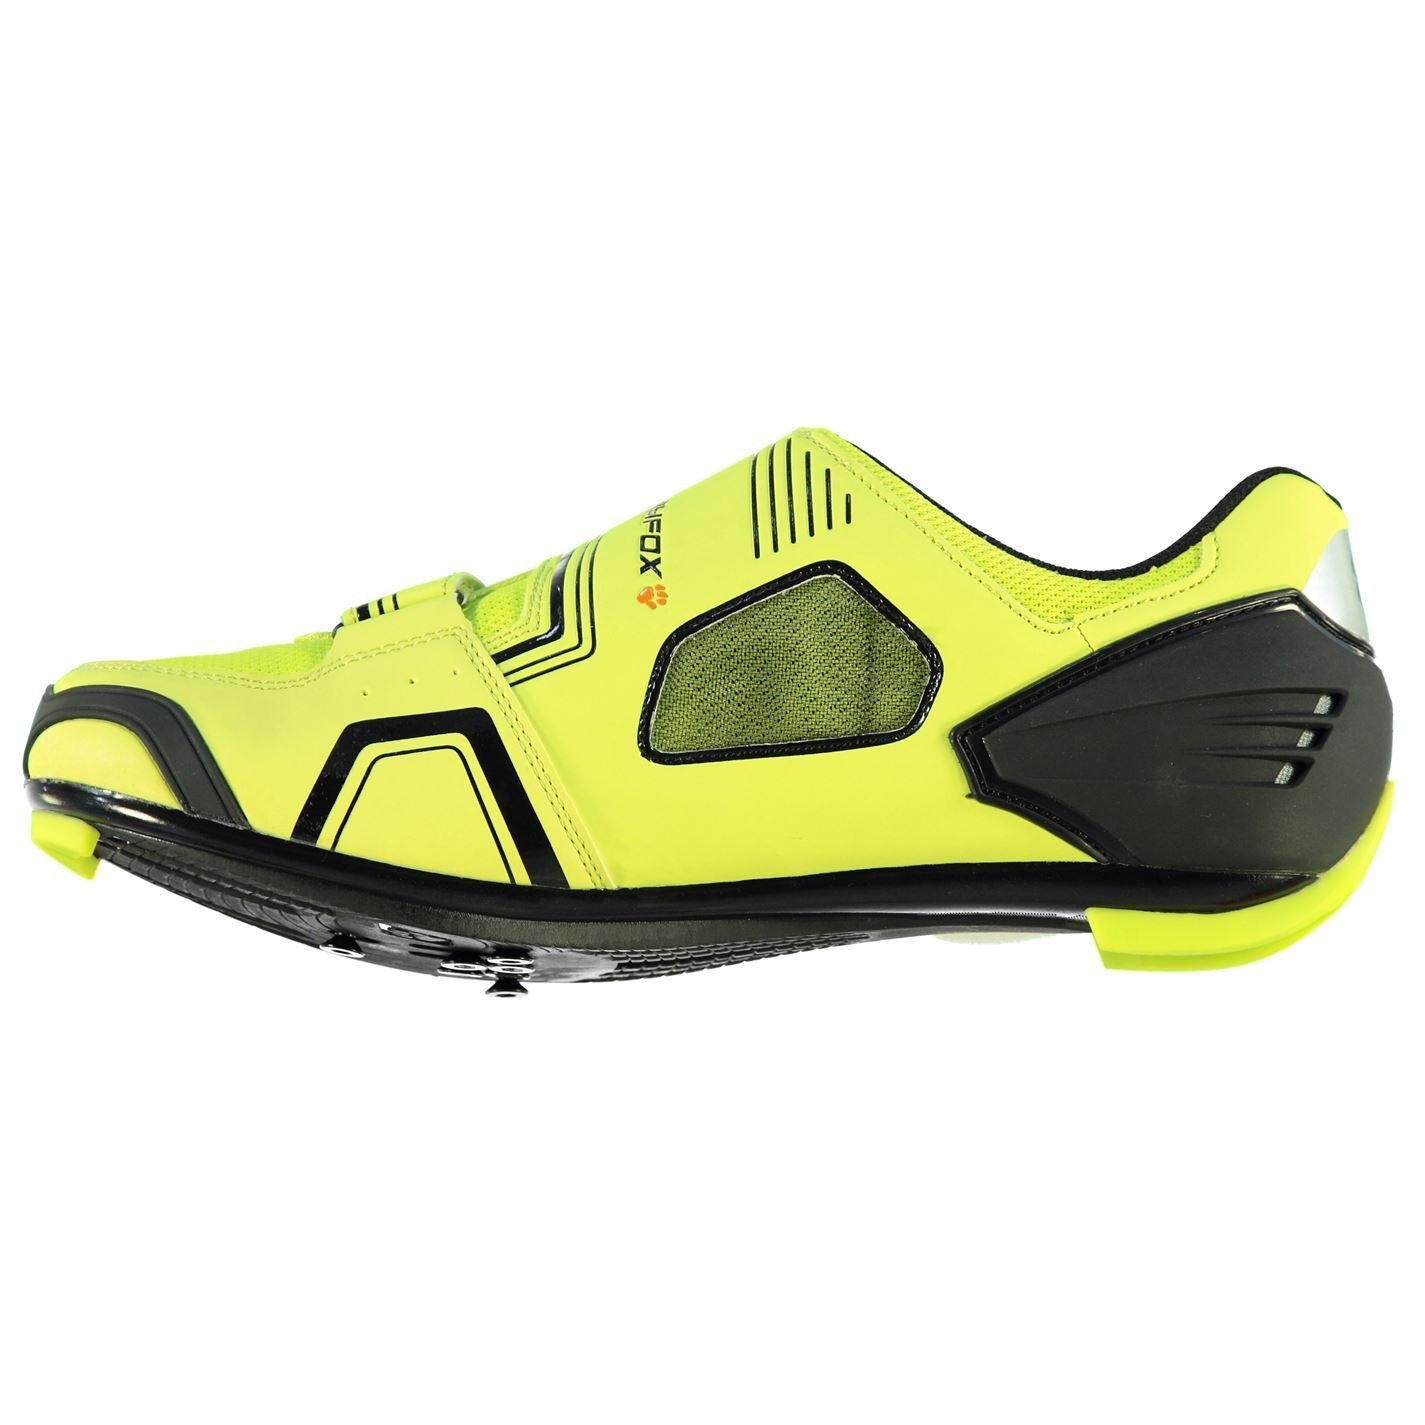 1552cffea7a89c Muddyfox Mens RBS100 Cycling Shoes Breathable Cycle Bike Sport:  Amazon.co.uk: Shoes & Bags